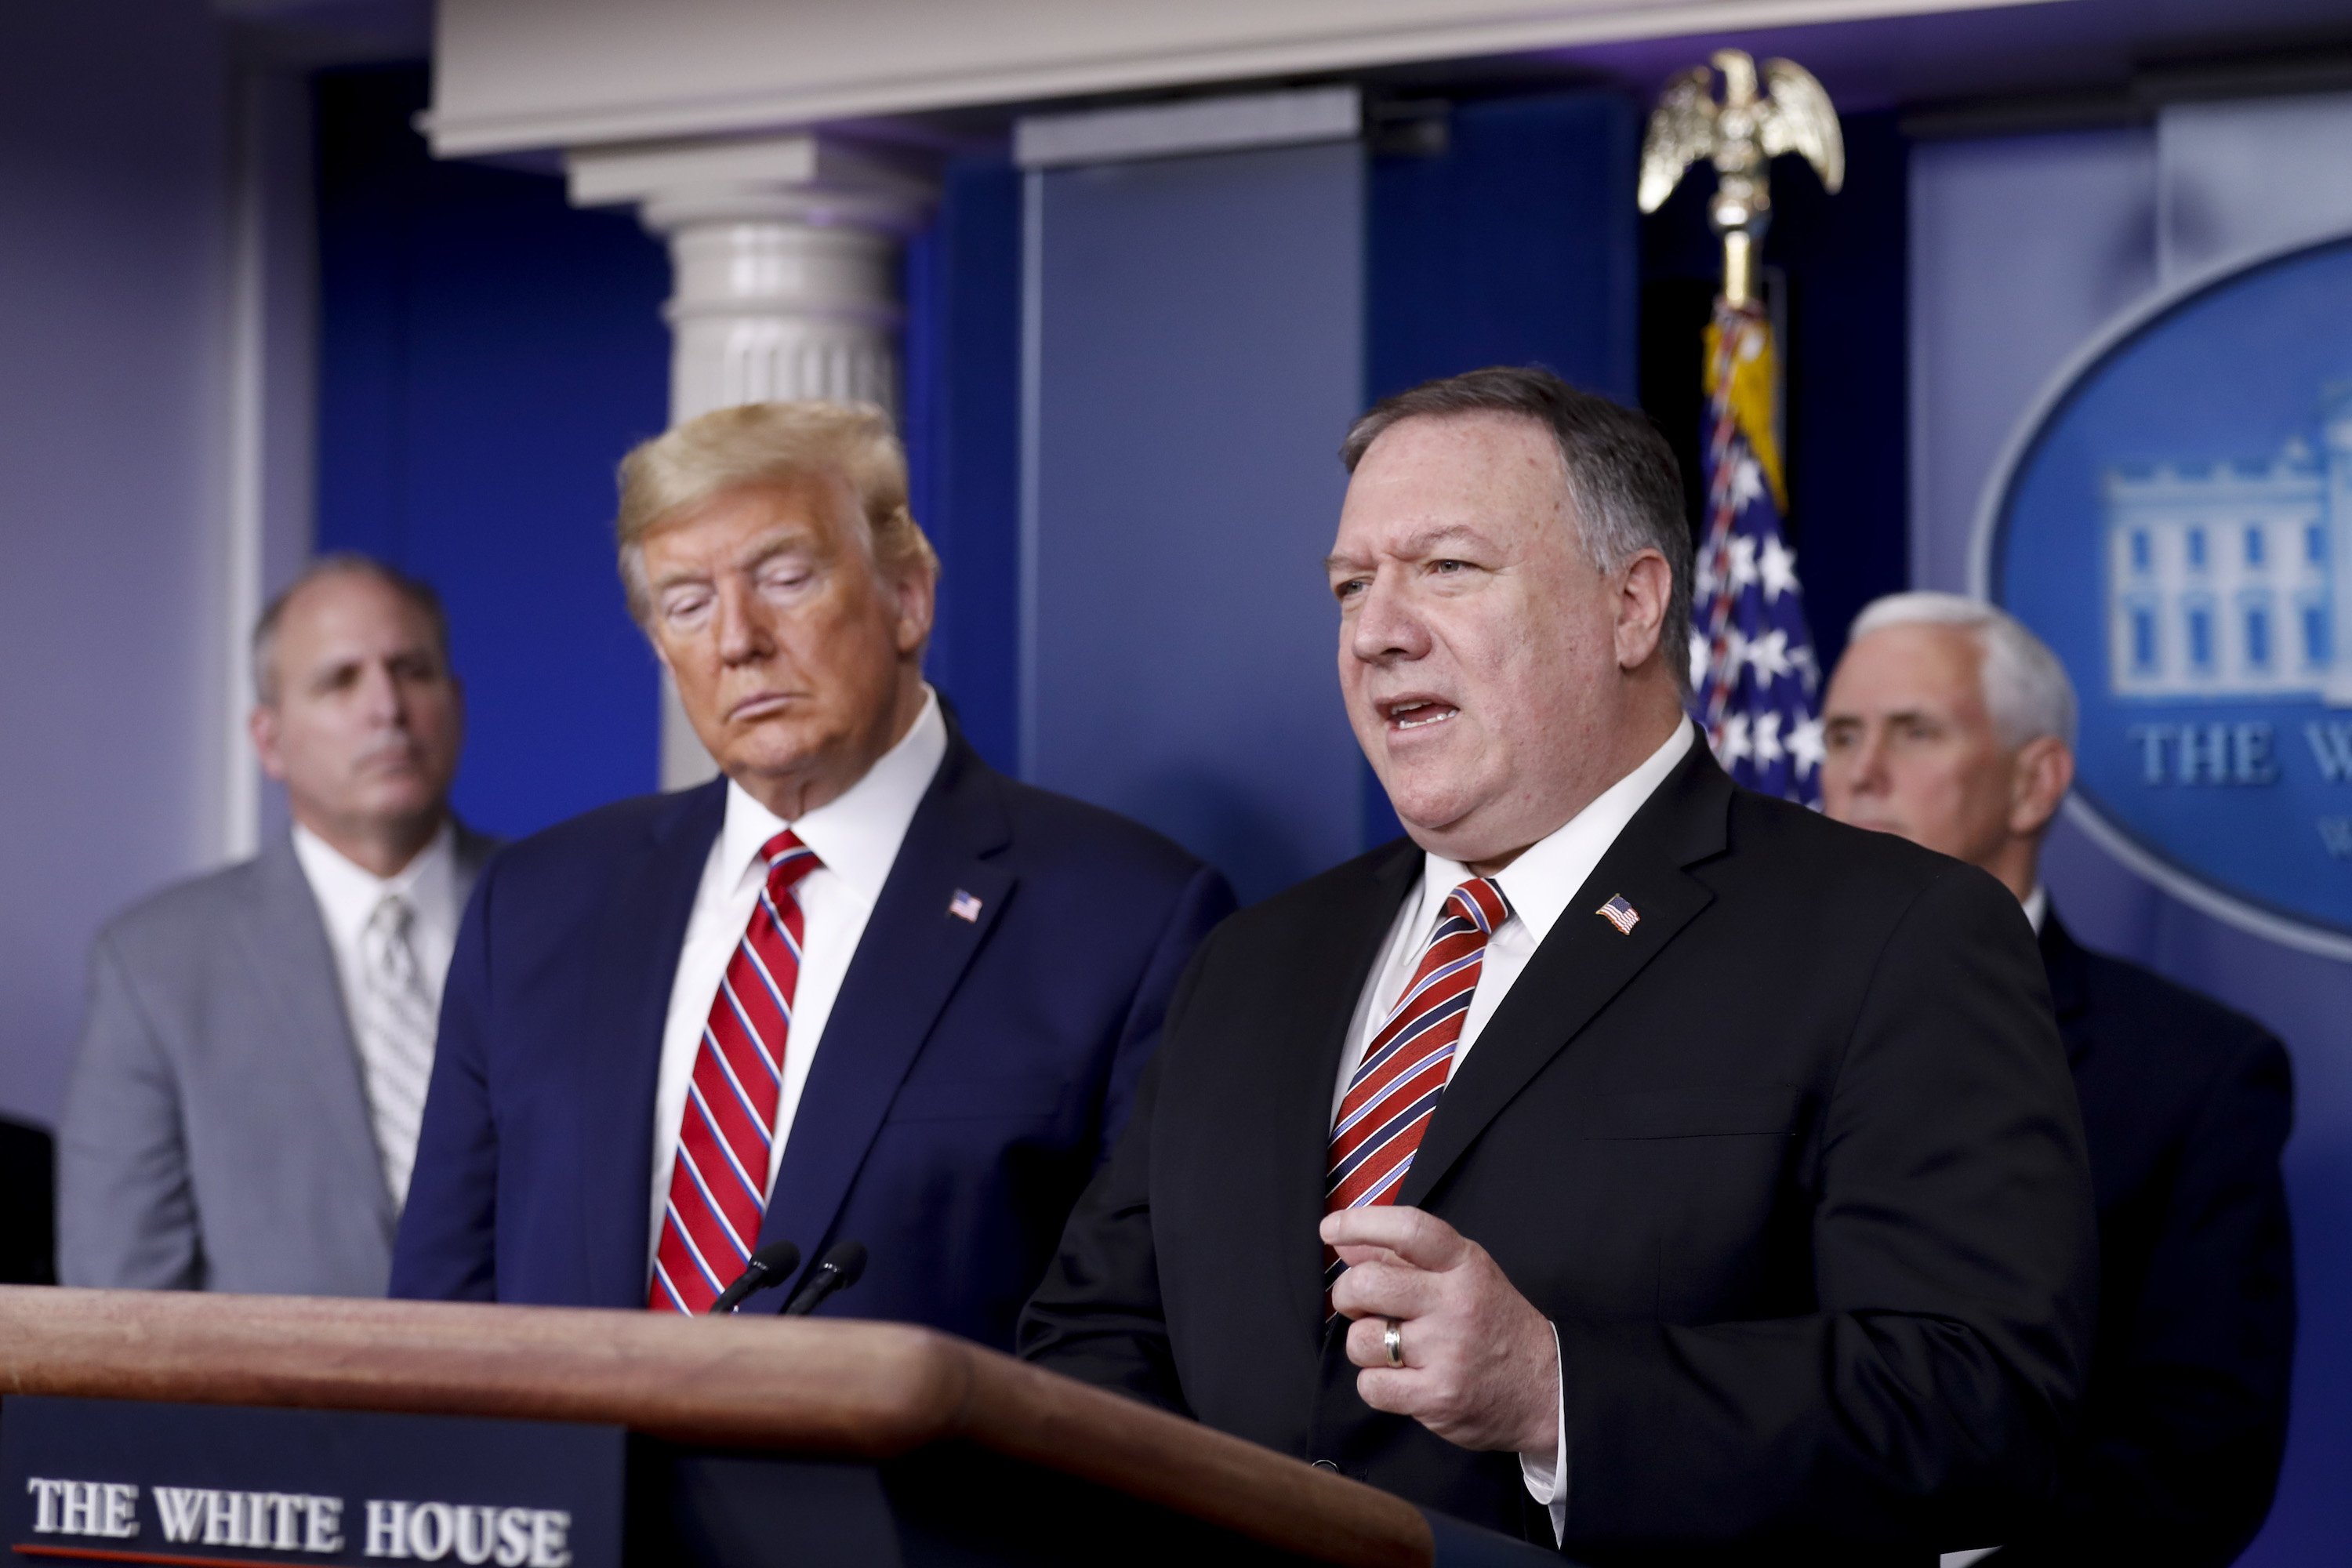 Mike Pompeo, U.S. secretary of state, speaks as U.S. President Donald Trump, second left, listens during a Coronavirus Task Force news conference in the briefing room of the White House in Washington, D.C., U.S., on March 20, 2020.